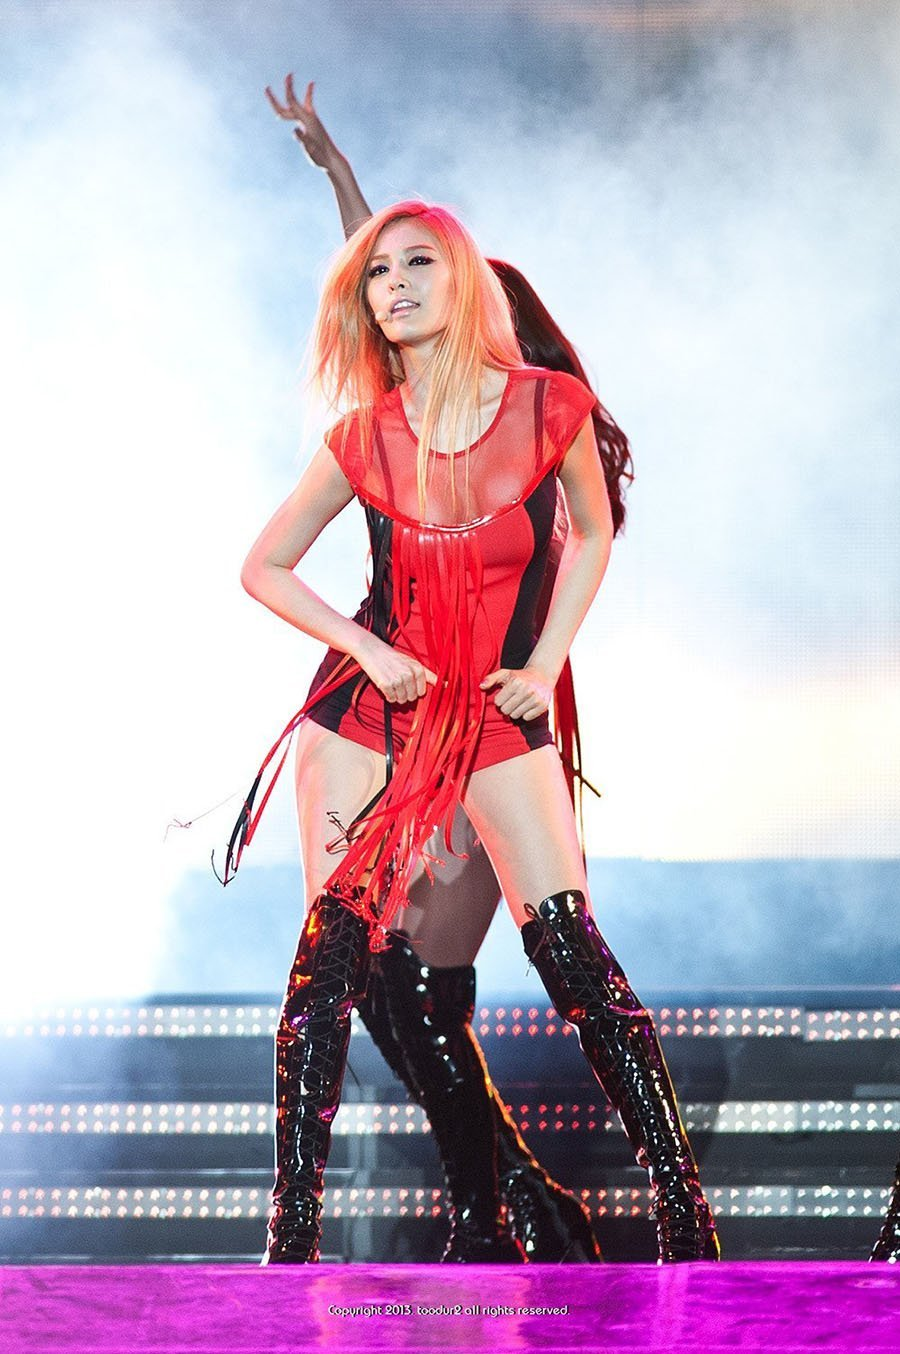 nana-hot-red-outfit-2